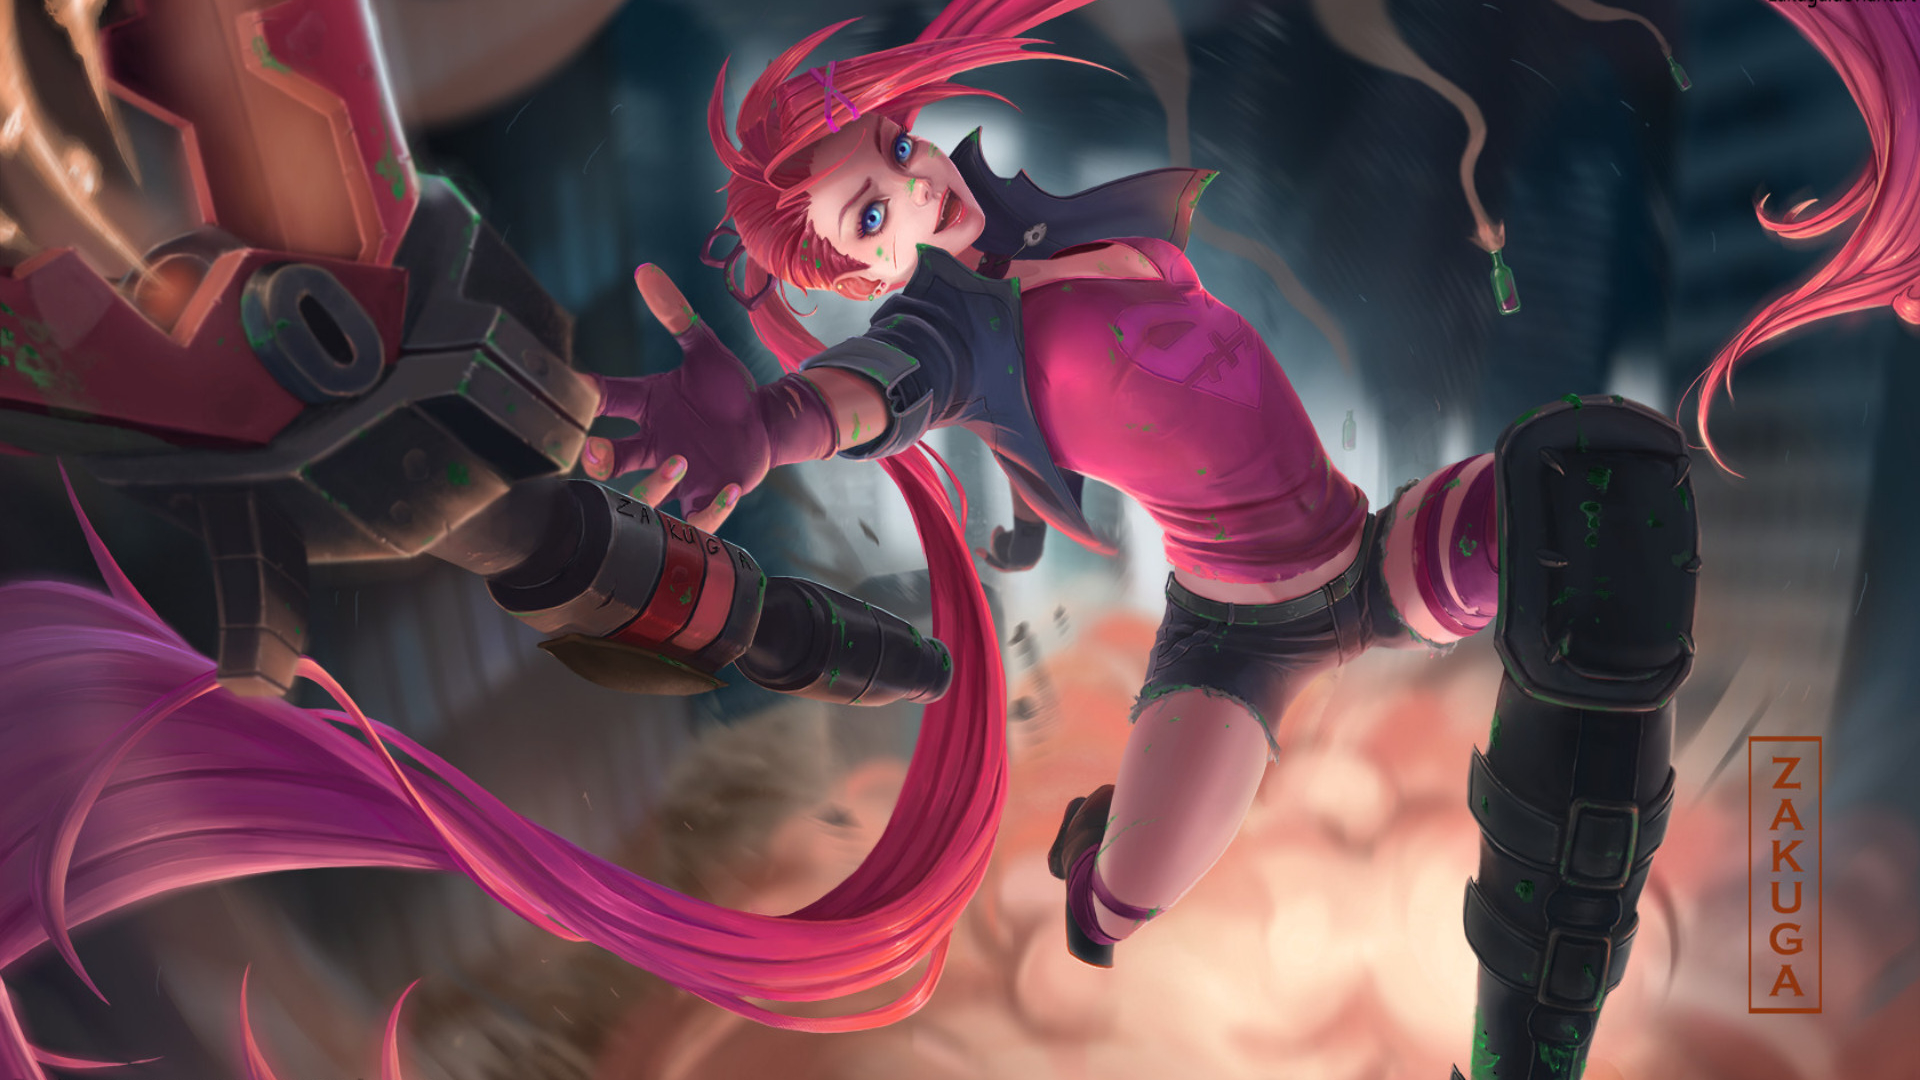 Wallpaper Of Jinx League Of Legends Video Game Background Hd Image